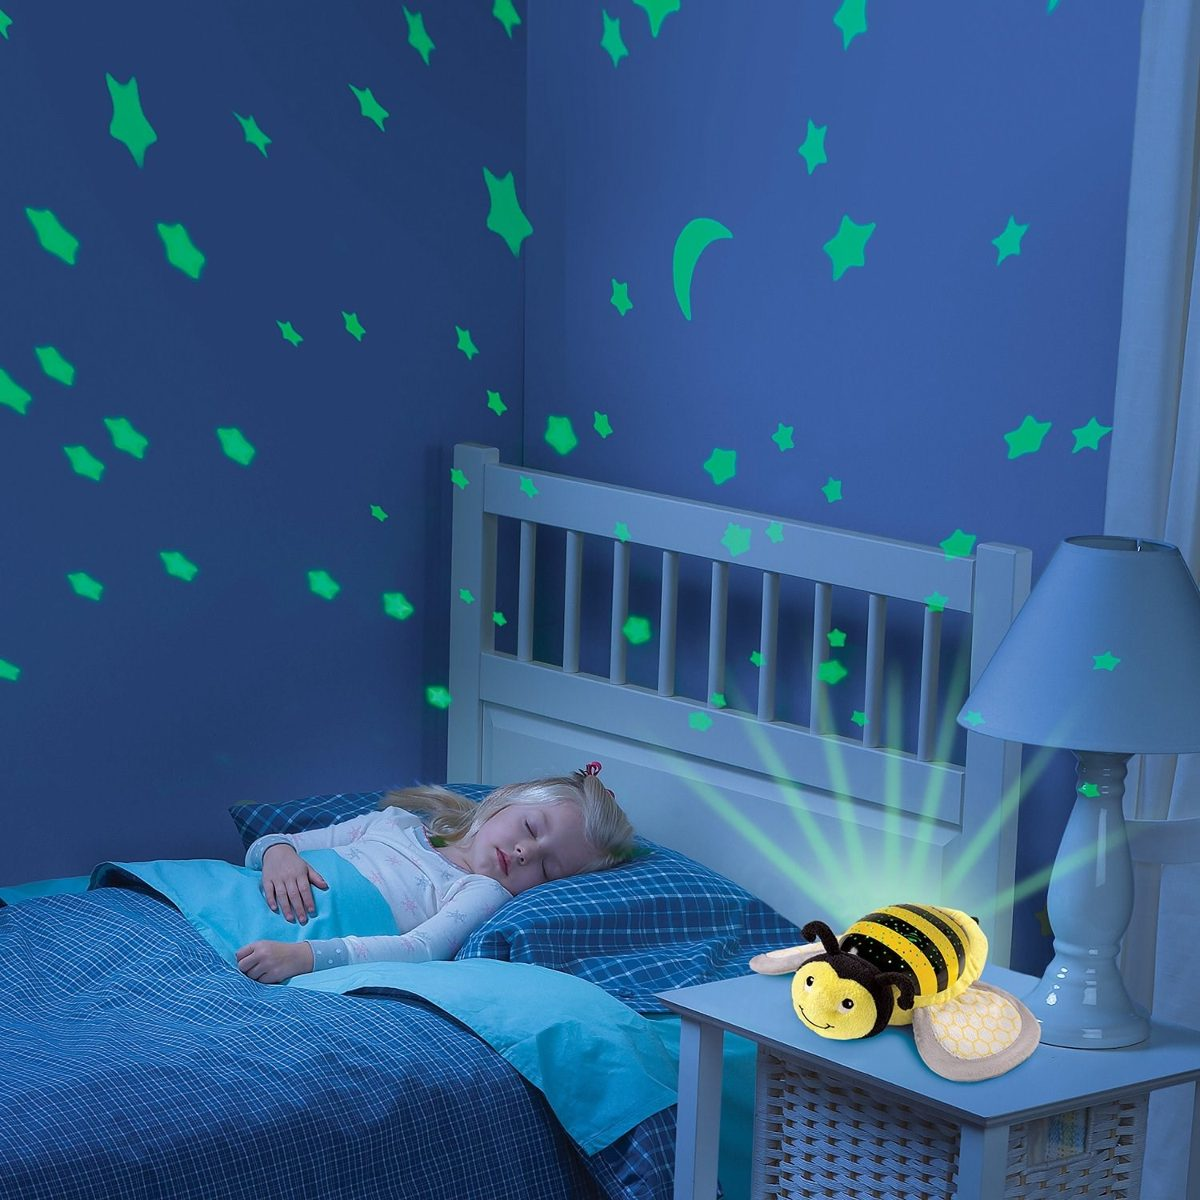 Baby Musical Night Light Lampara Proyector Para Bebe Con Musica Sumer Infant Abeja